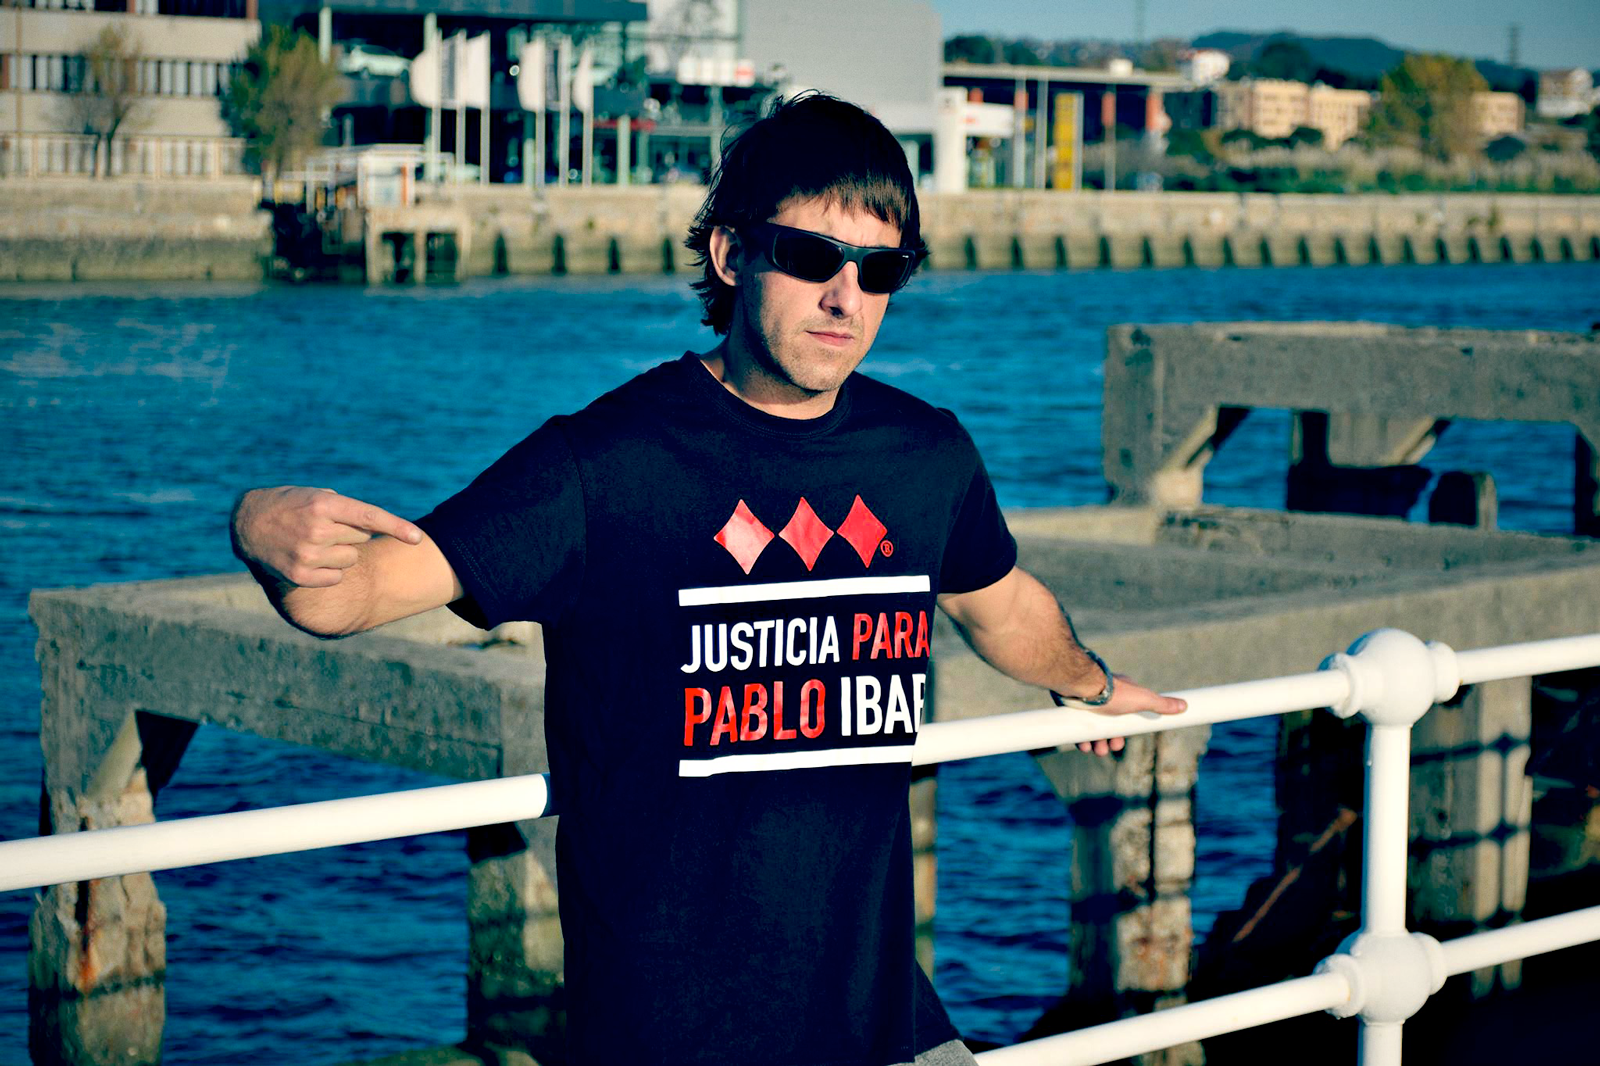 Euskalgrooves - Justice for Pablo Ibar